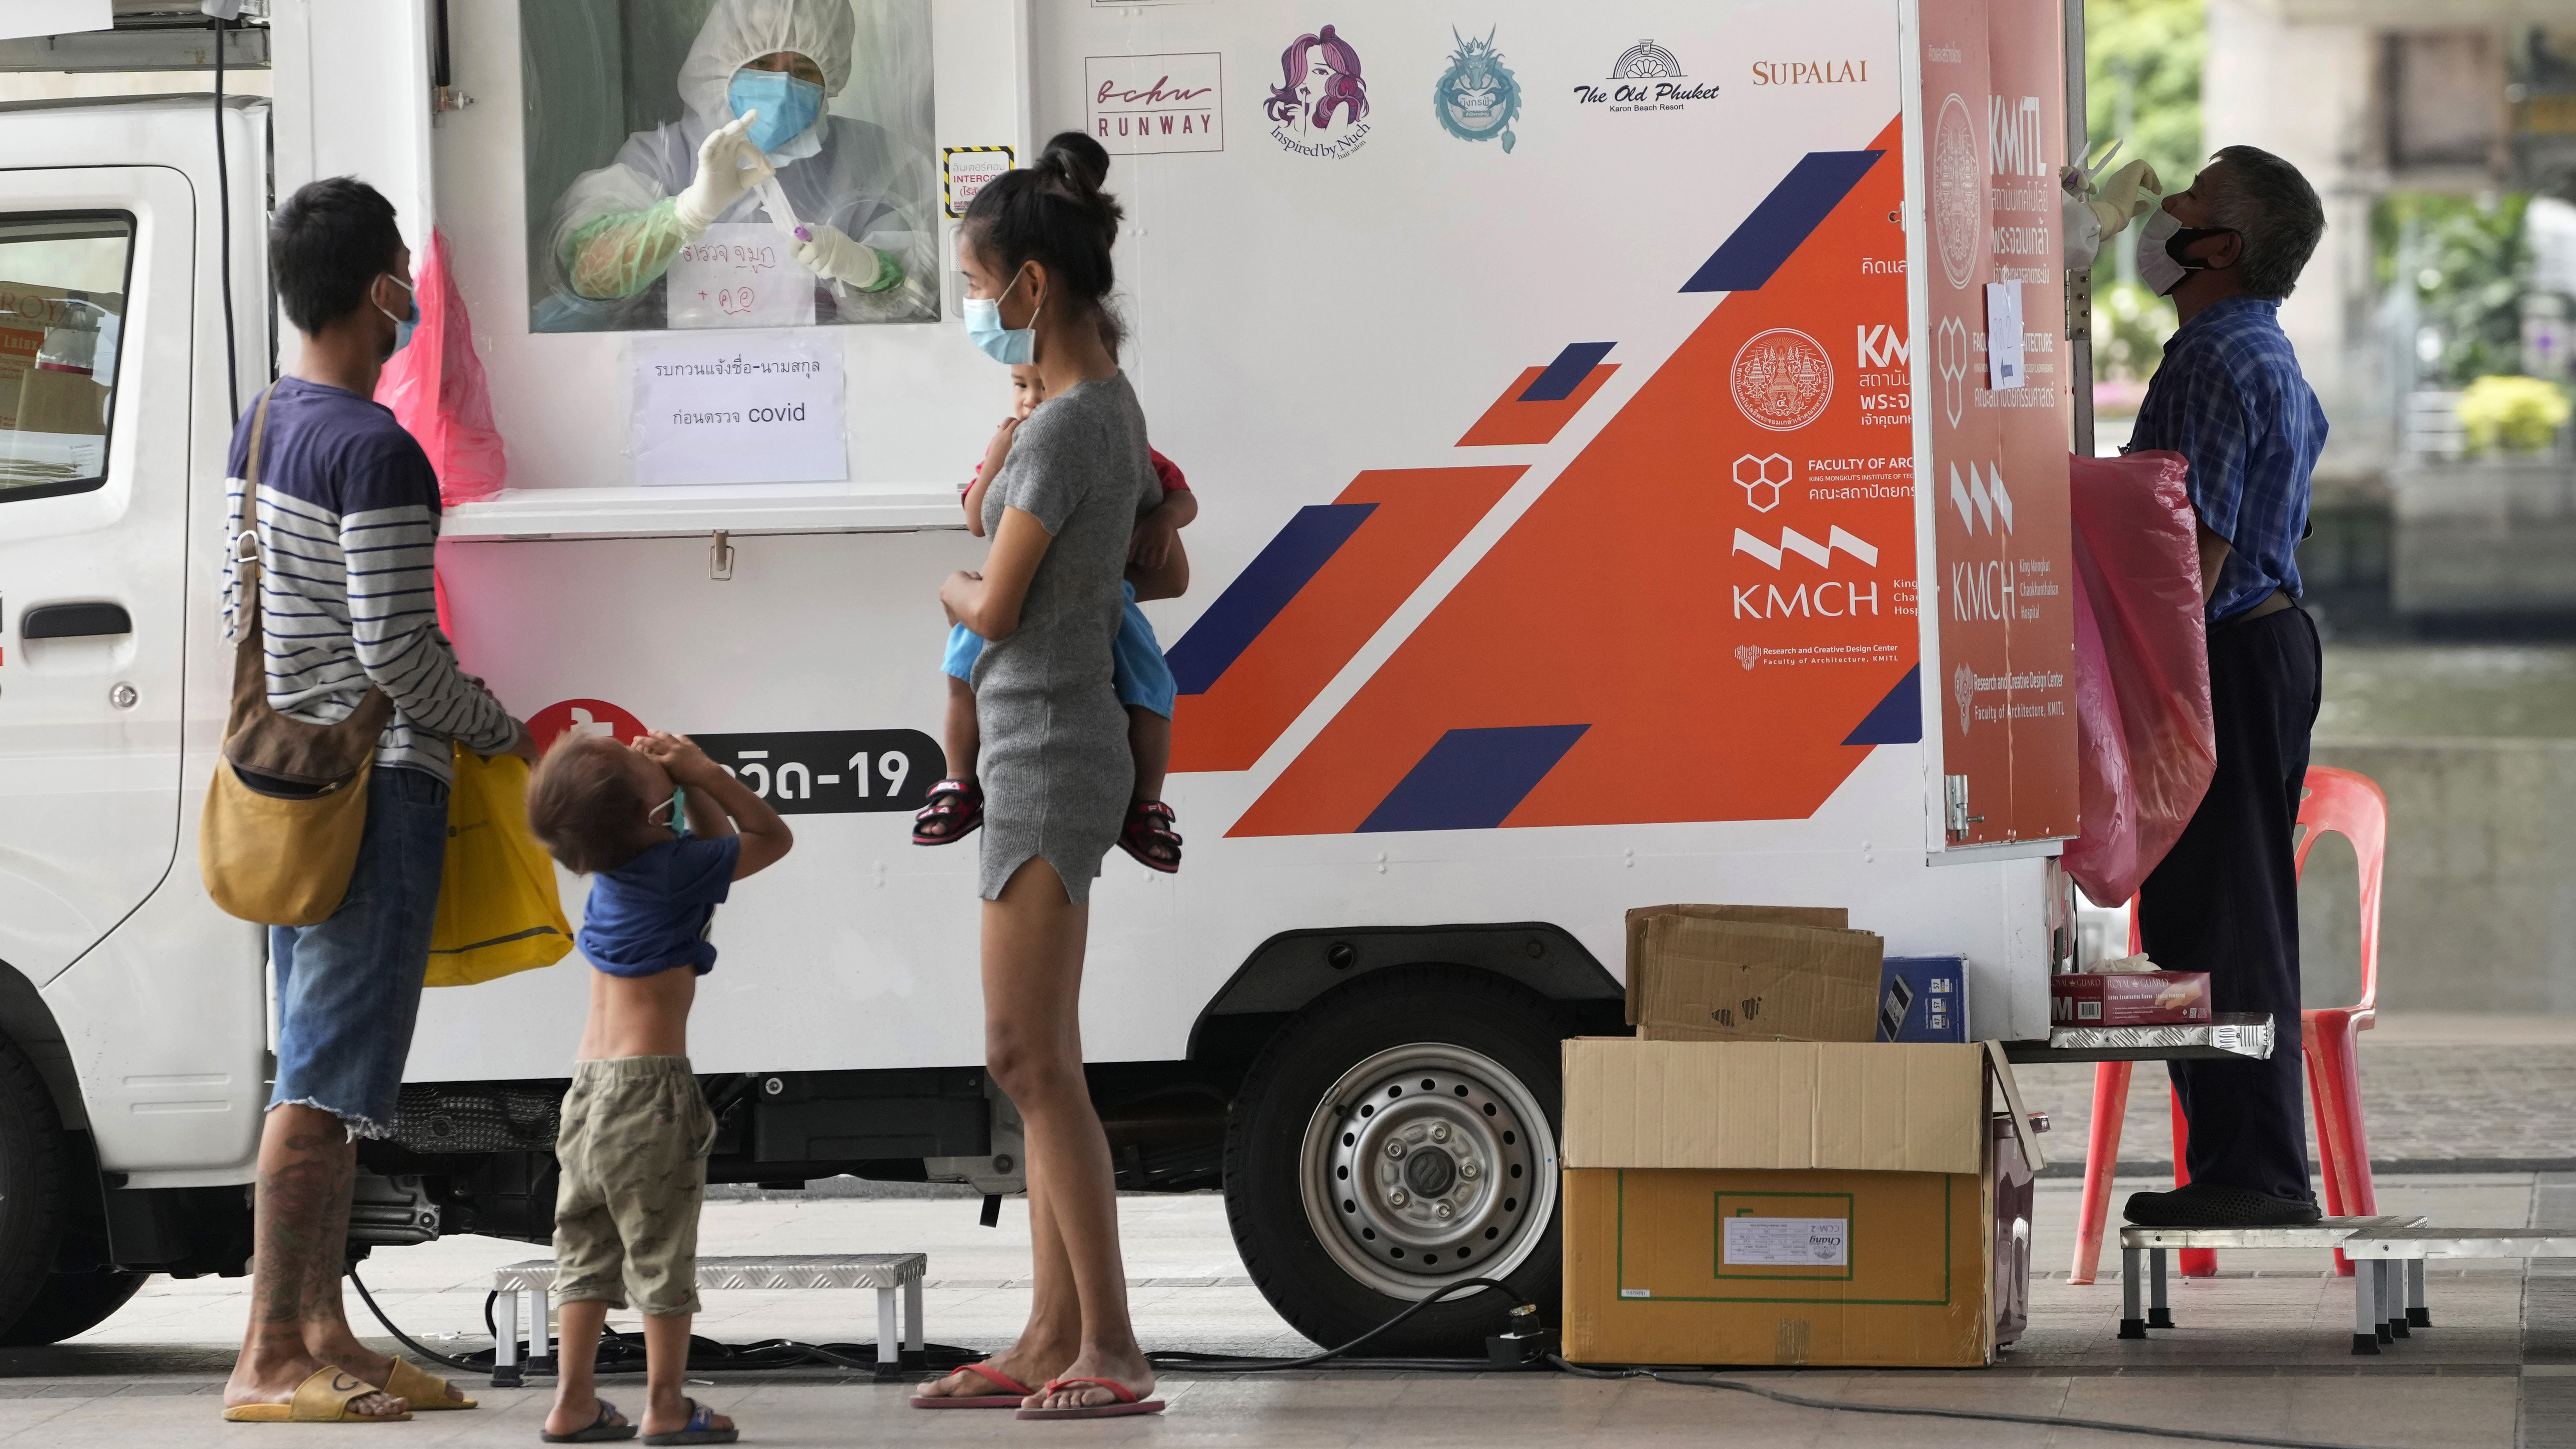 Health workers collect nasal swabs from locals for coronavirus testing at a mobile facility in Bangkok, Thailand.